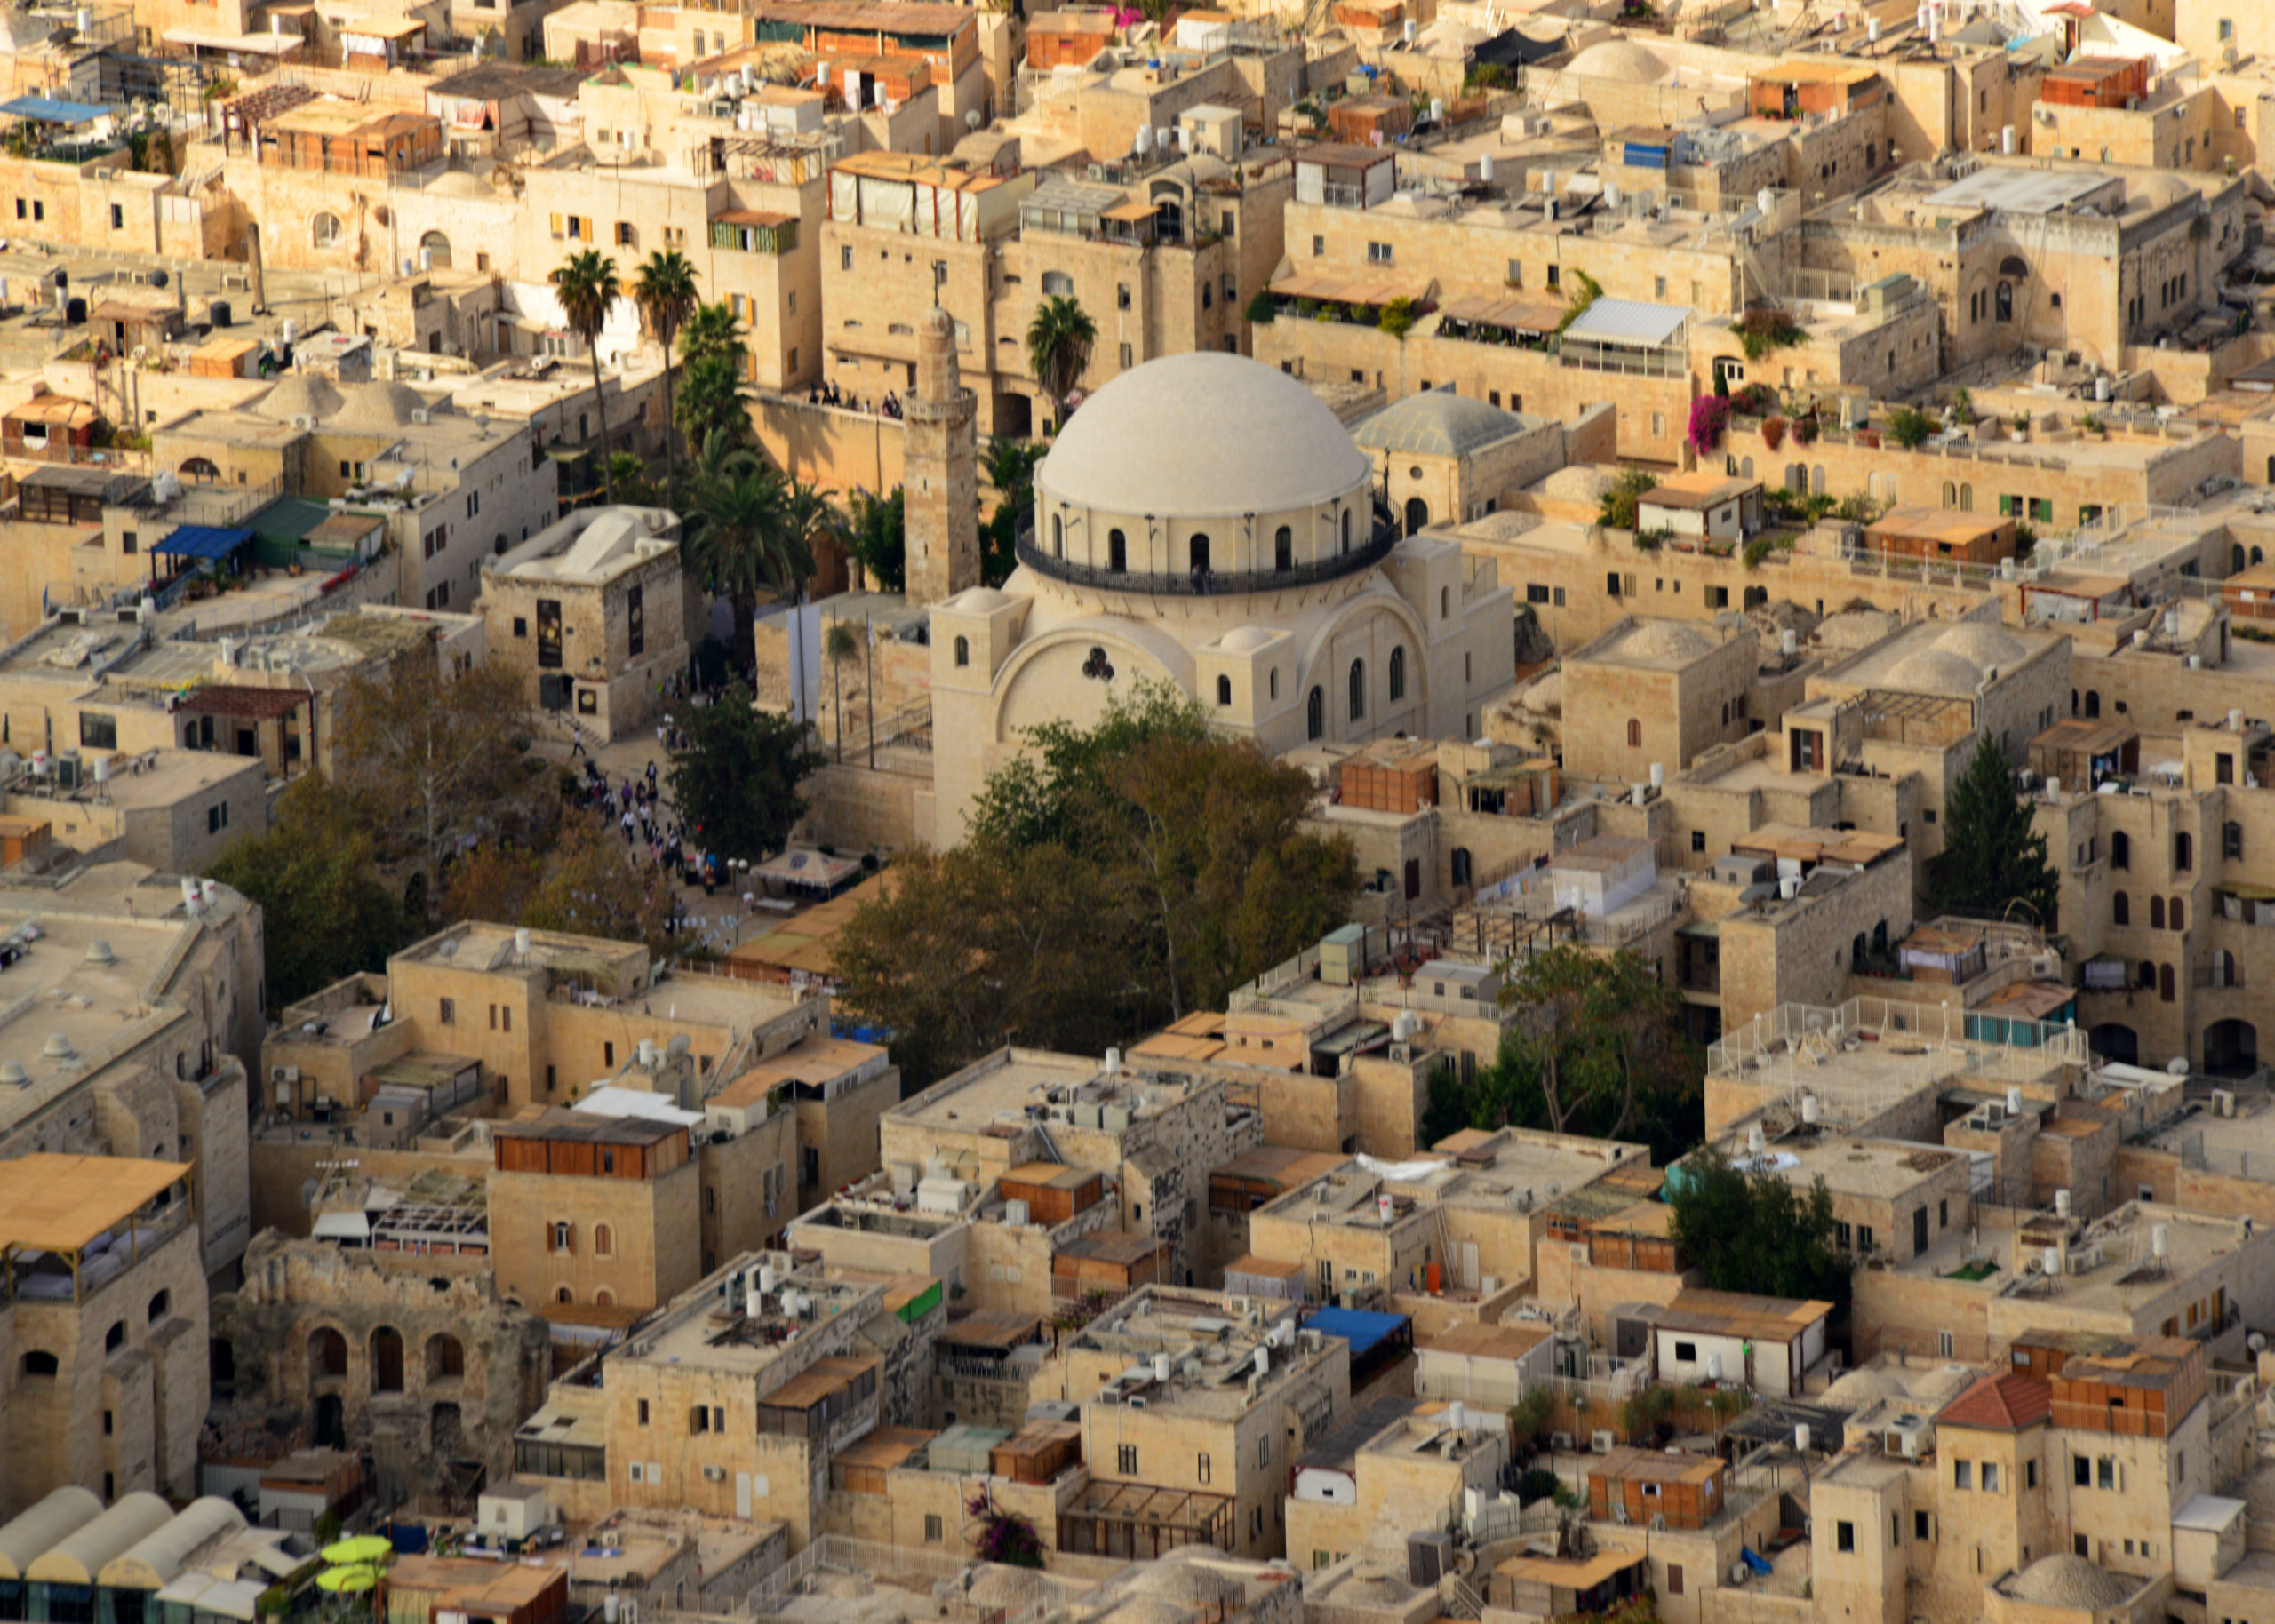 The Jewish Quarter of Yerushalayim's Old City